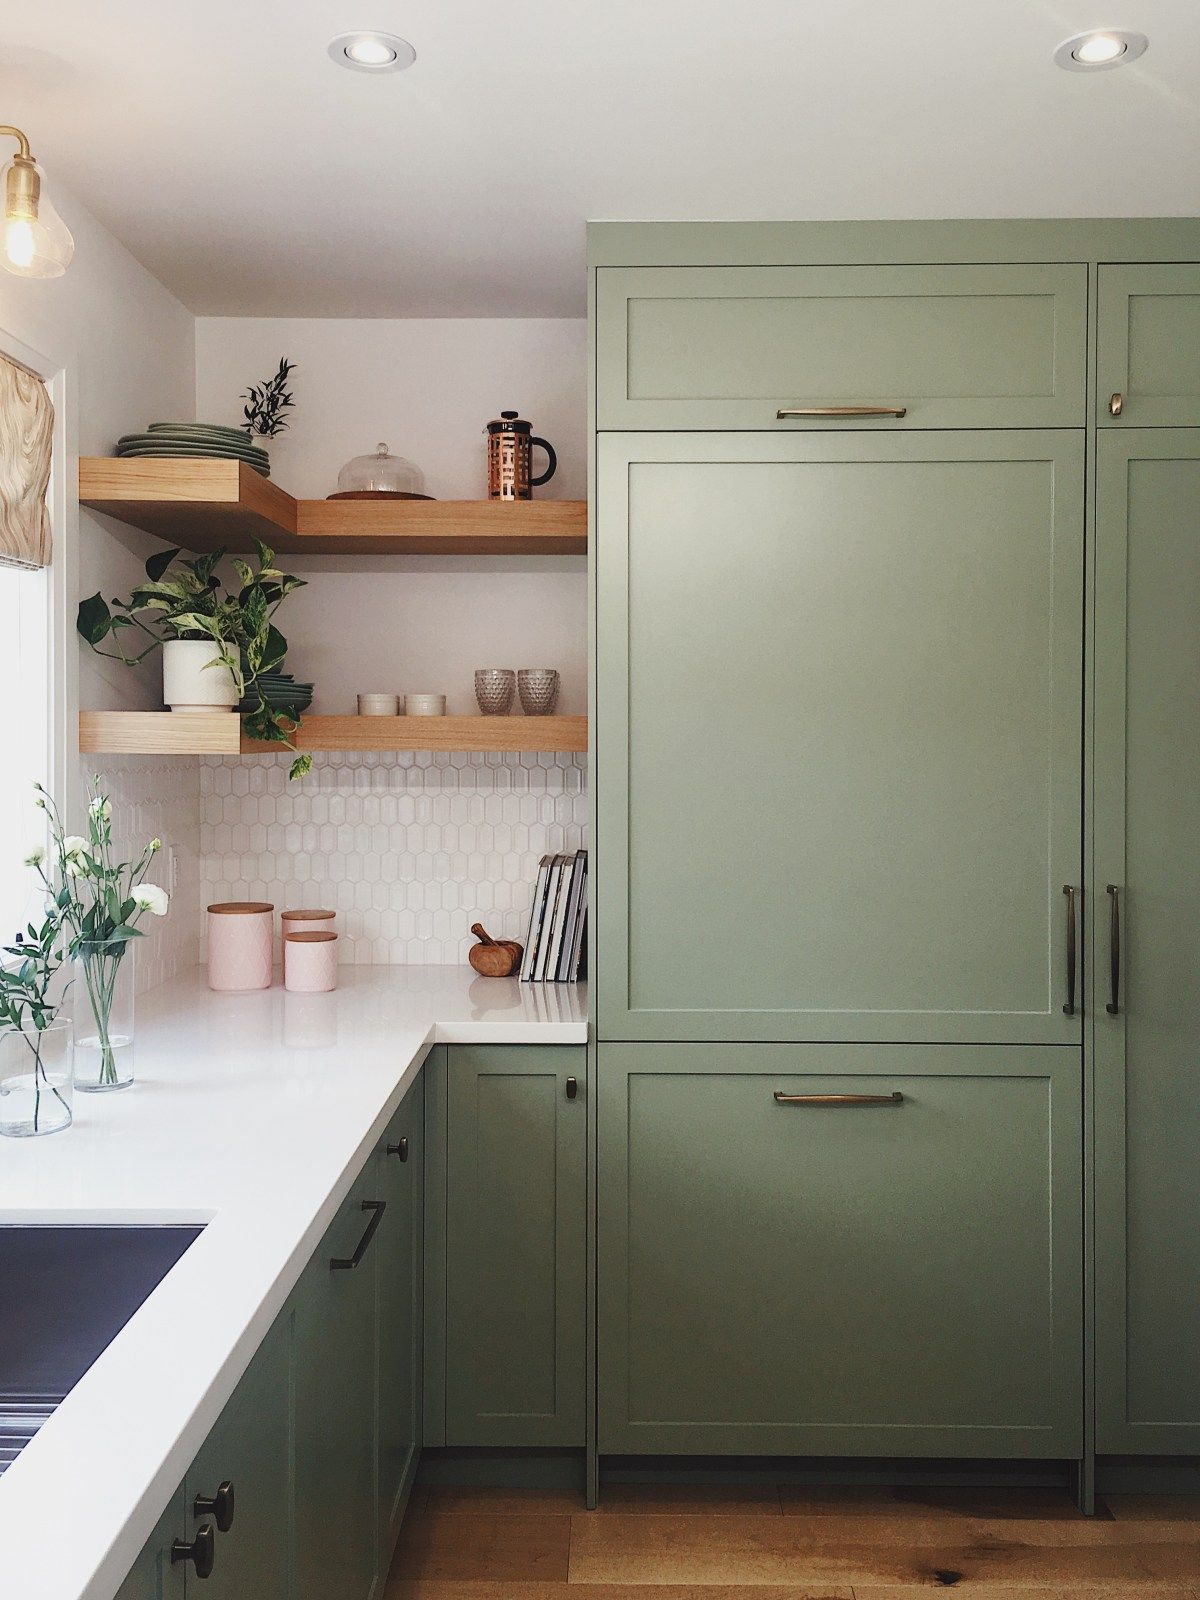 Sage Green Cabinets Brass Gold Hardware And Open Wood Shelving In A Kitchen For Hgtv Green Cabinets Kitchen Cabinet Inspiration Sage Green Kitchen